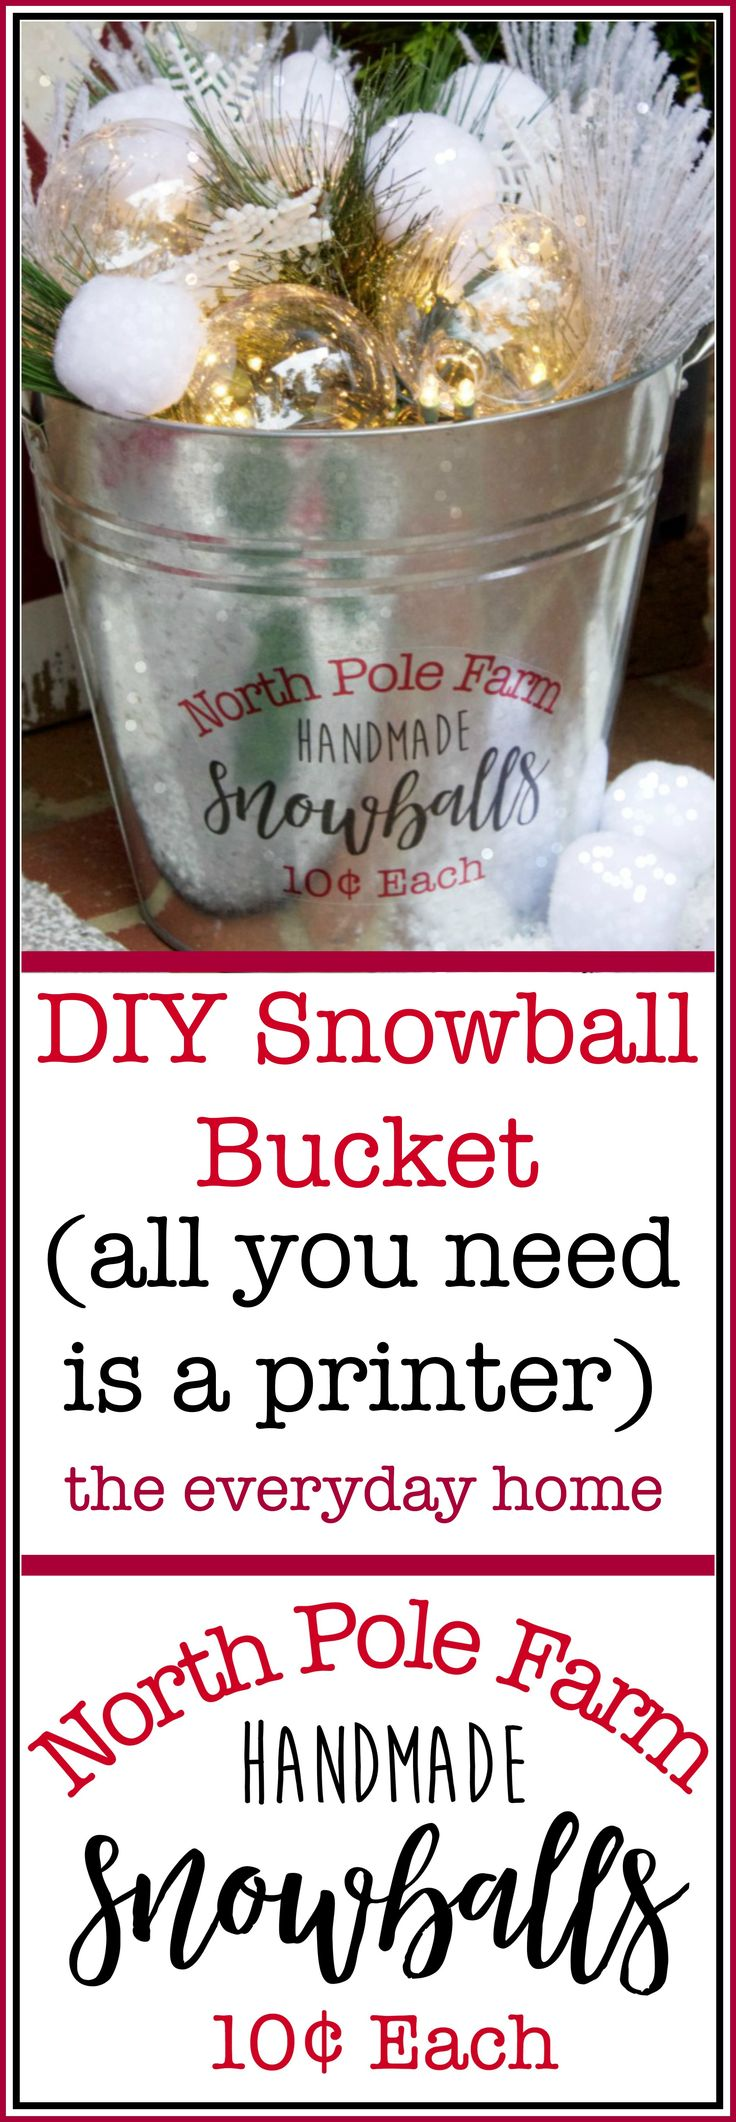 (all you need is a home printer!) DIY Snowball Bucket | The Everyday Home